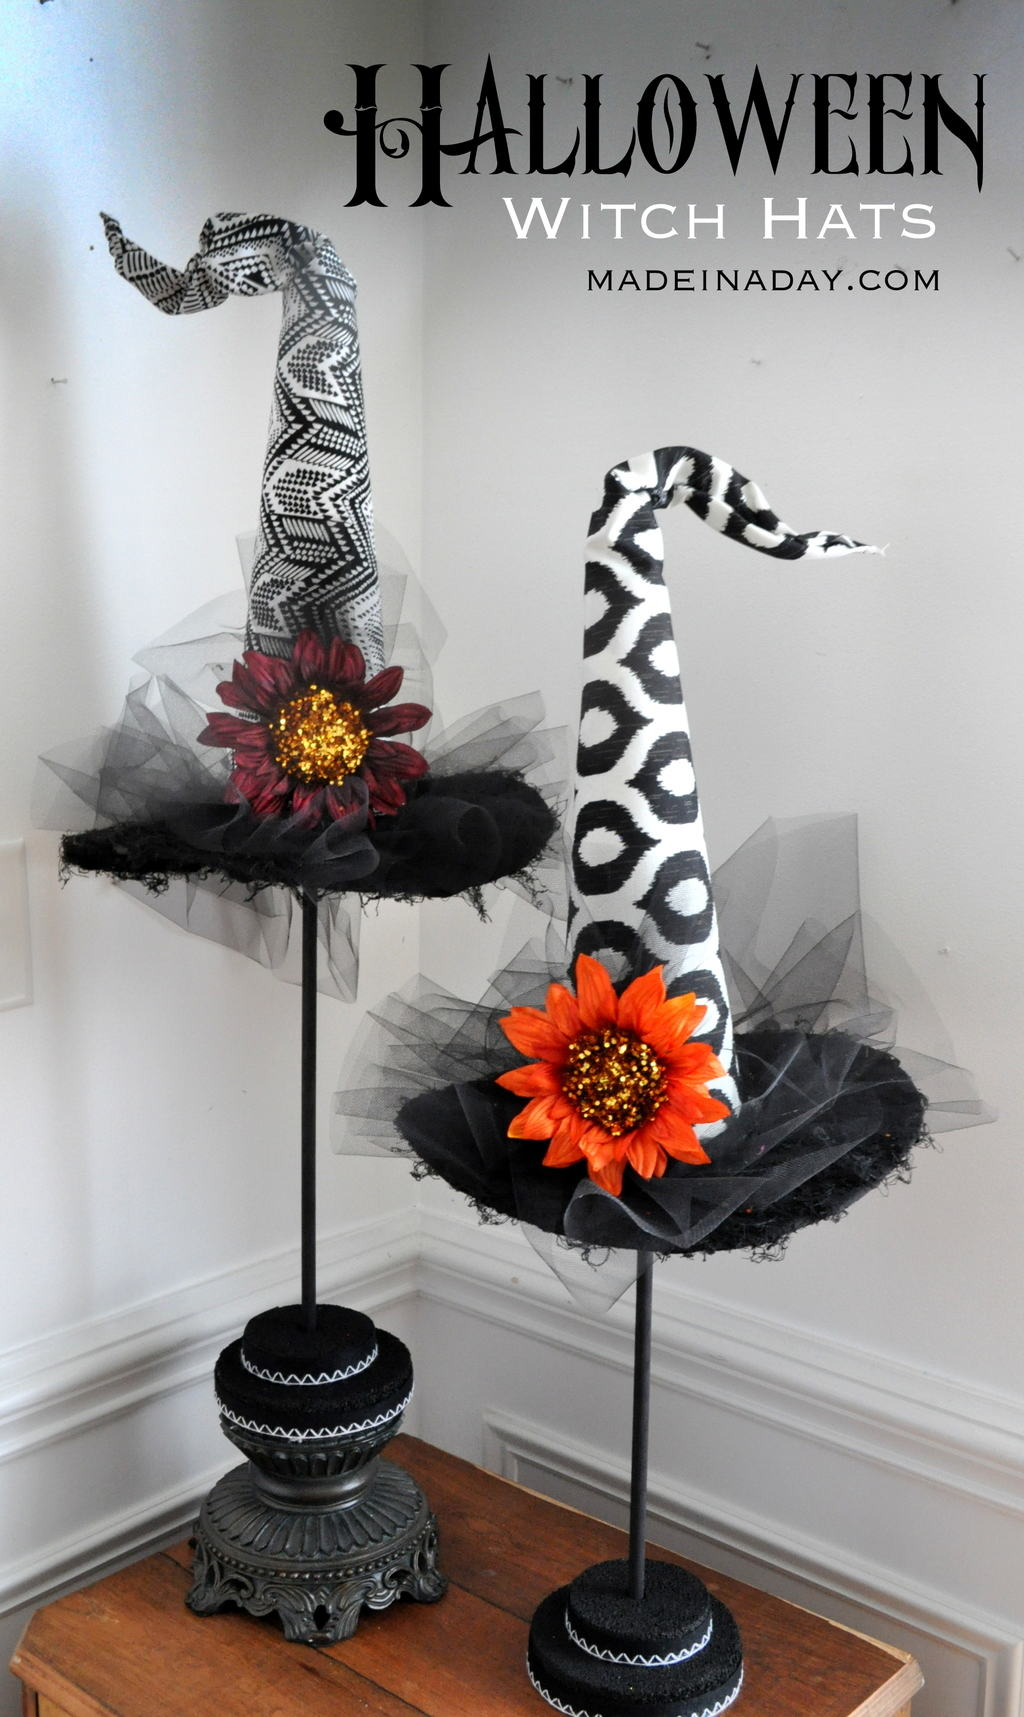 DIY Decorative Witch Hats Halloween Prop, Halloween Witch Decorations,